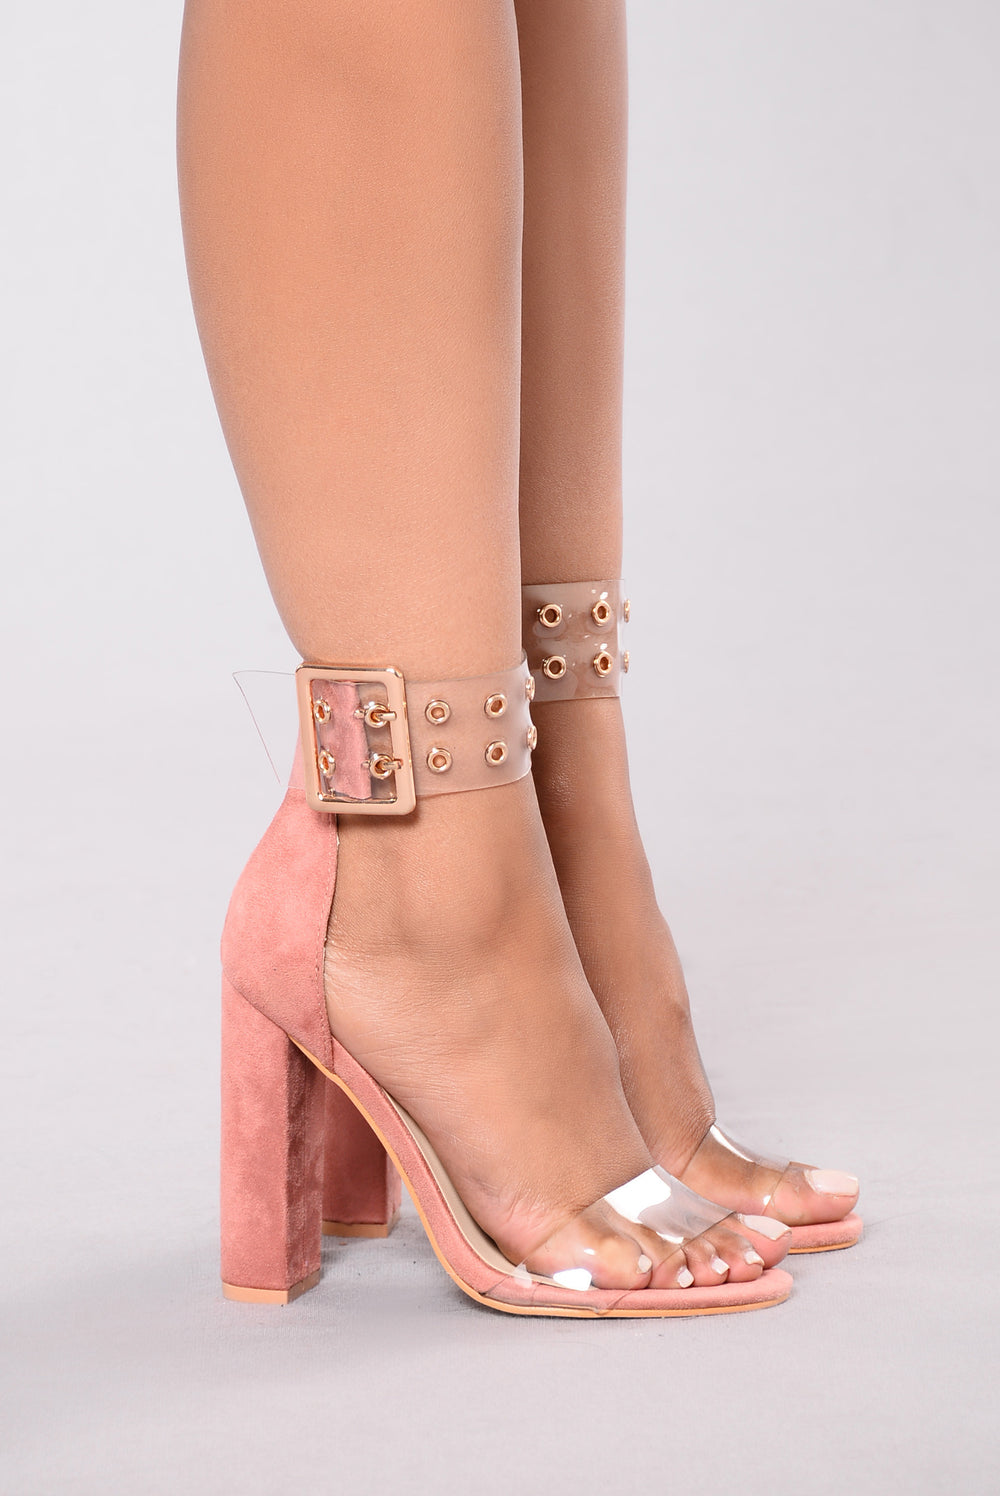 Vine Night Heel - Blush